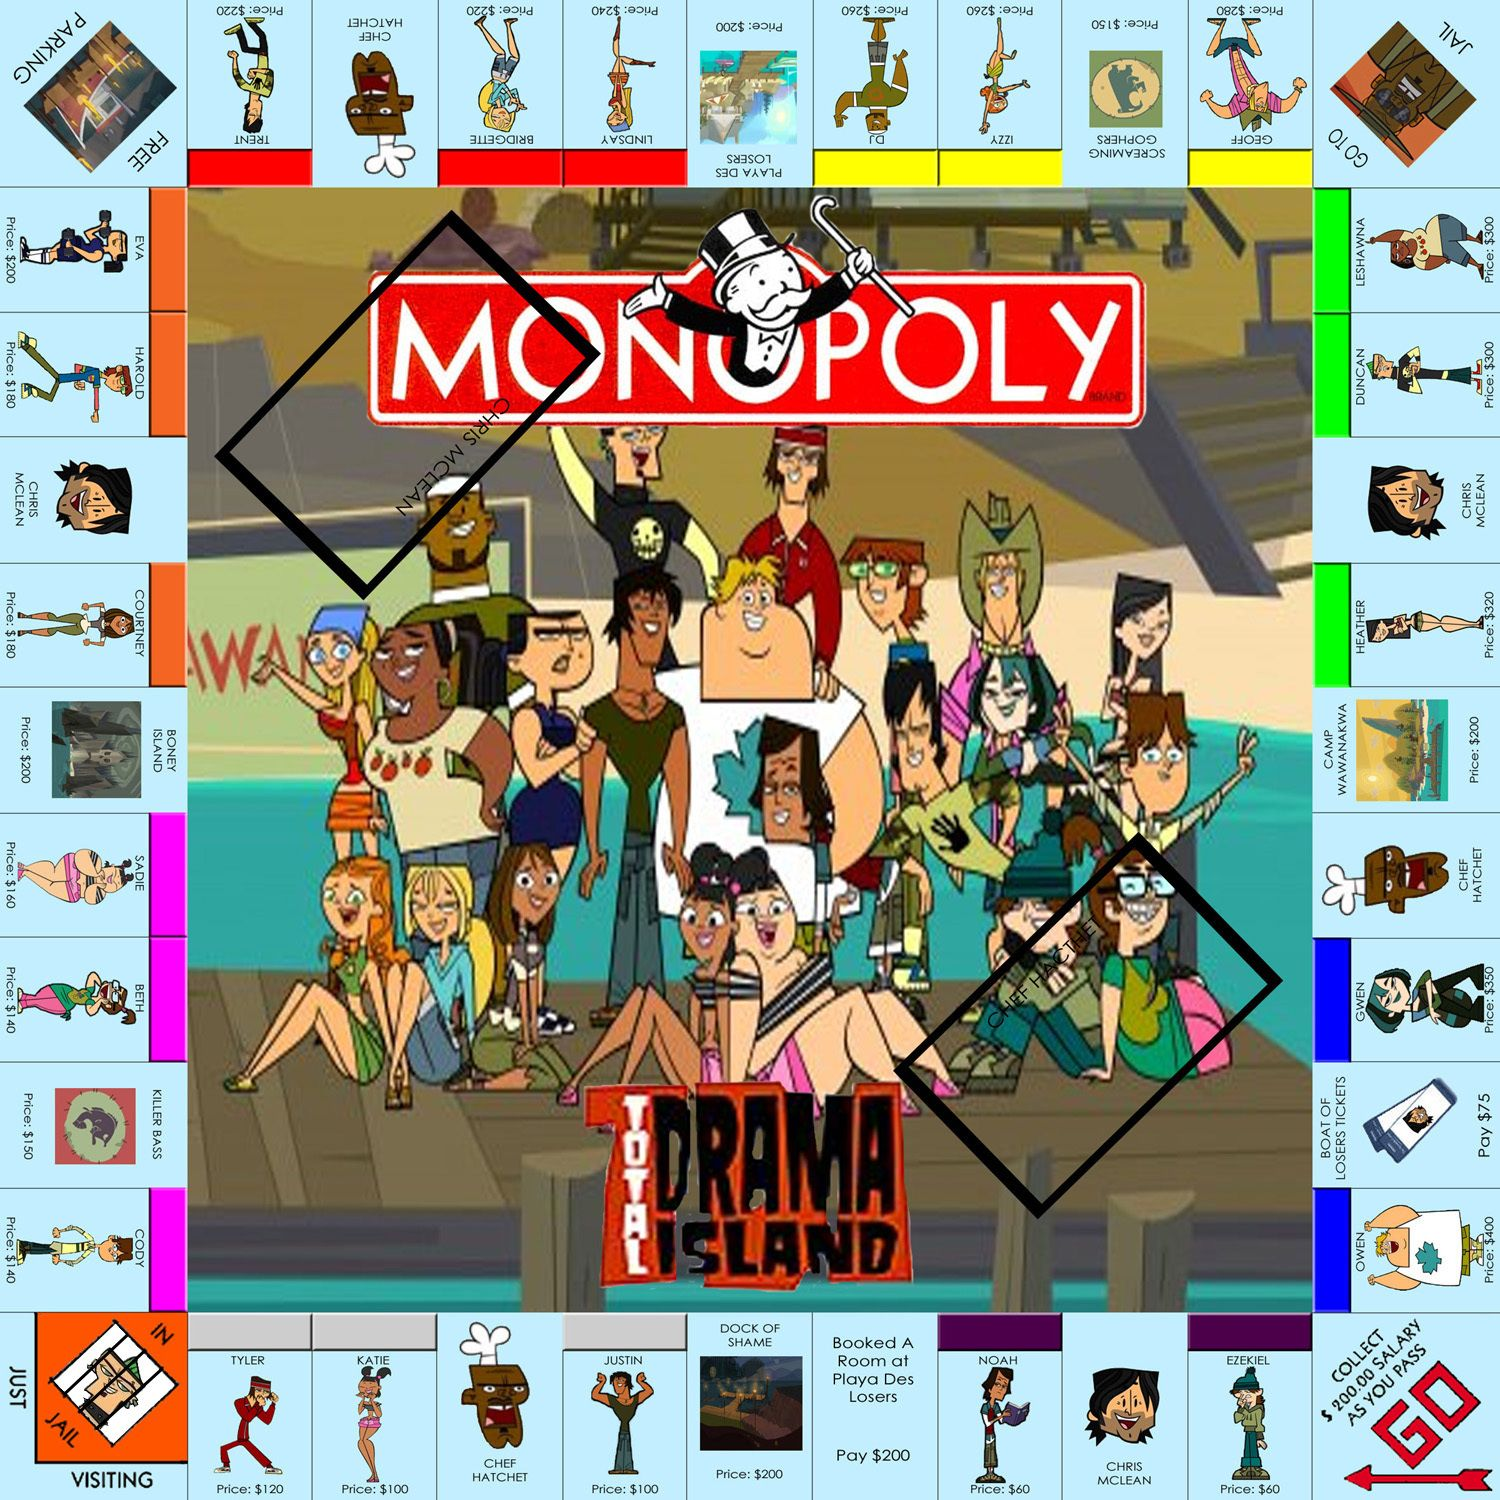 total drama island monoply i want thuis game sooo badly total